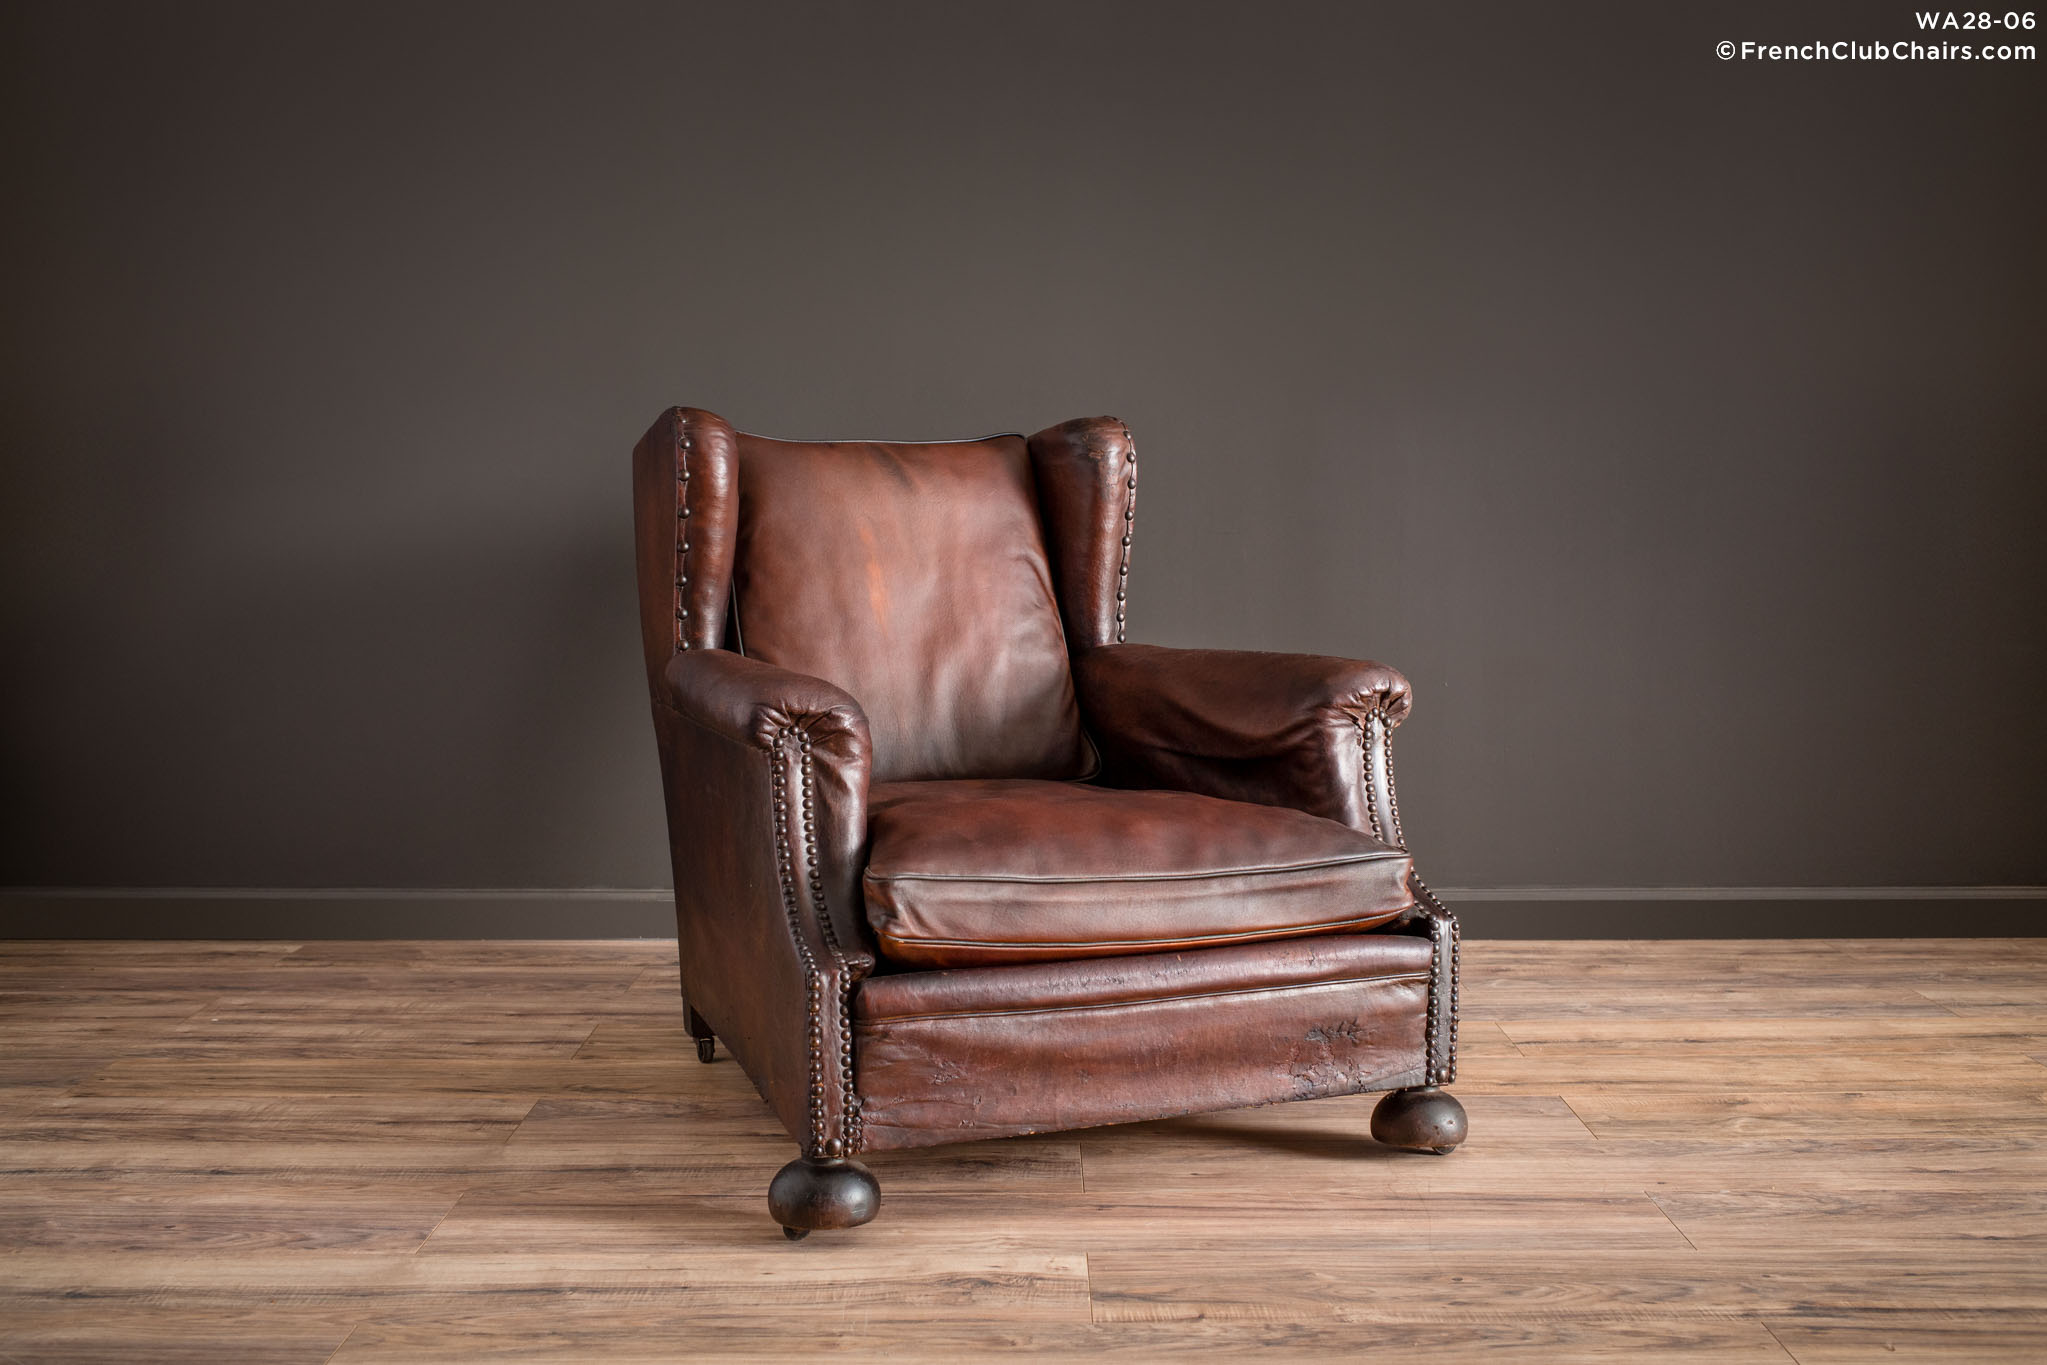 WA_28-06_Wingback_Solo_R_1TQ1-williams-antiks-leather-french-club-chair-wa_fcccom